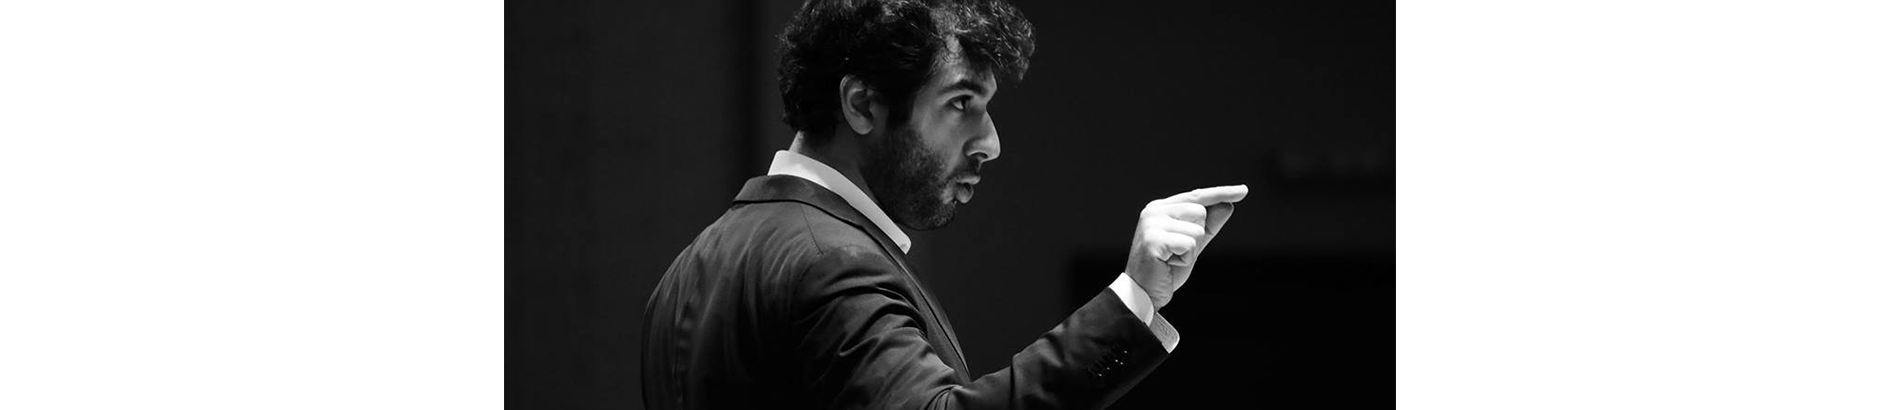 Sergey Smbatyan conducts Khachaturian and Terterian